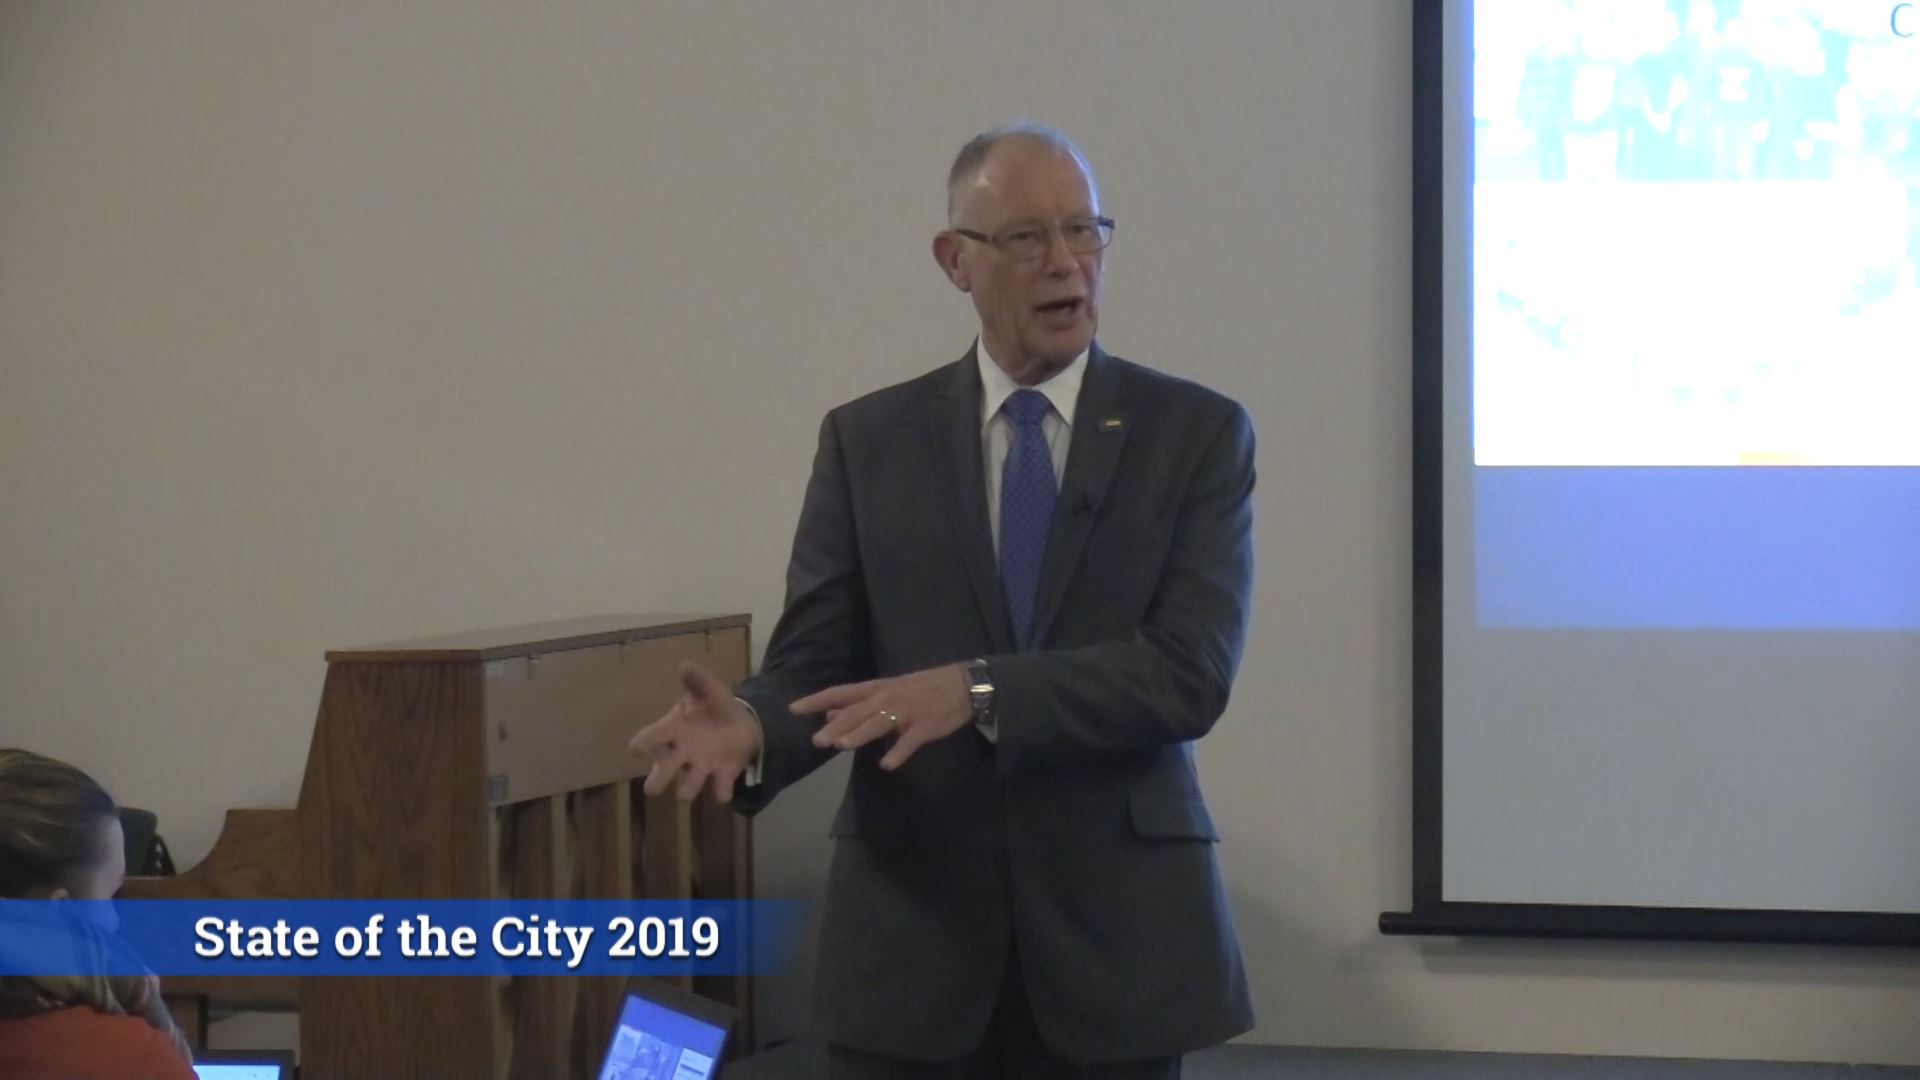 Mayor Esser presenting at State of the City